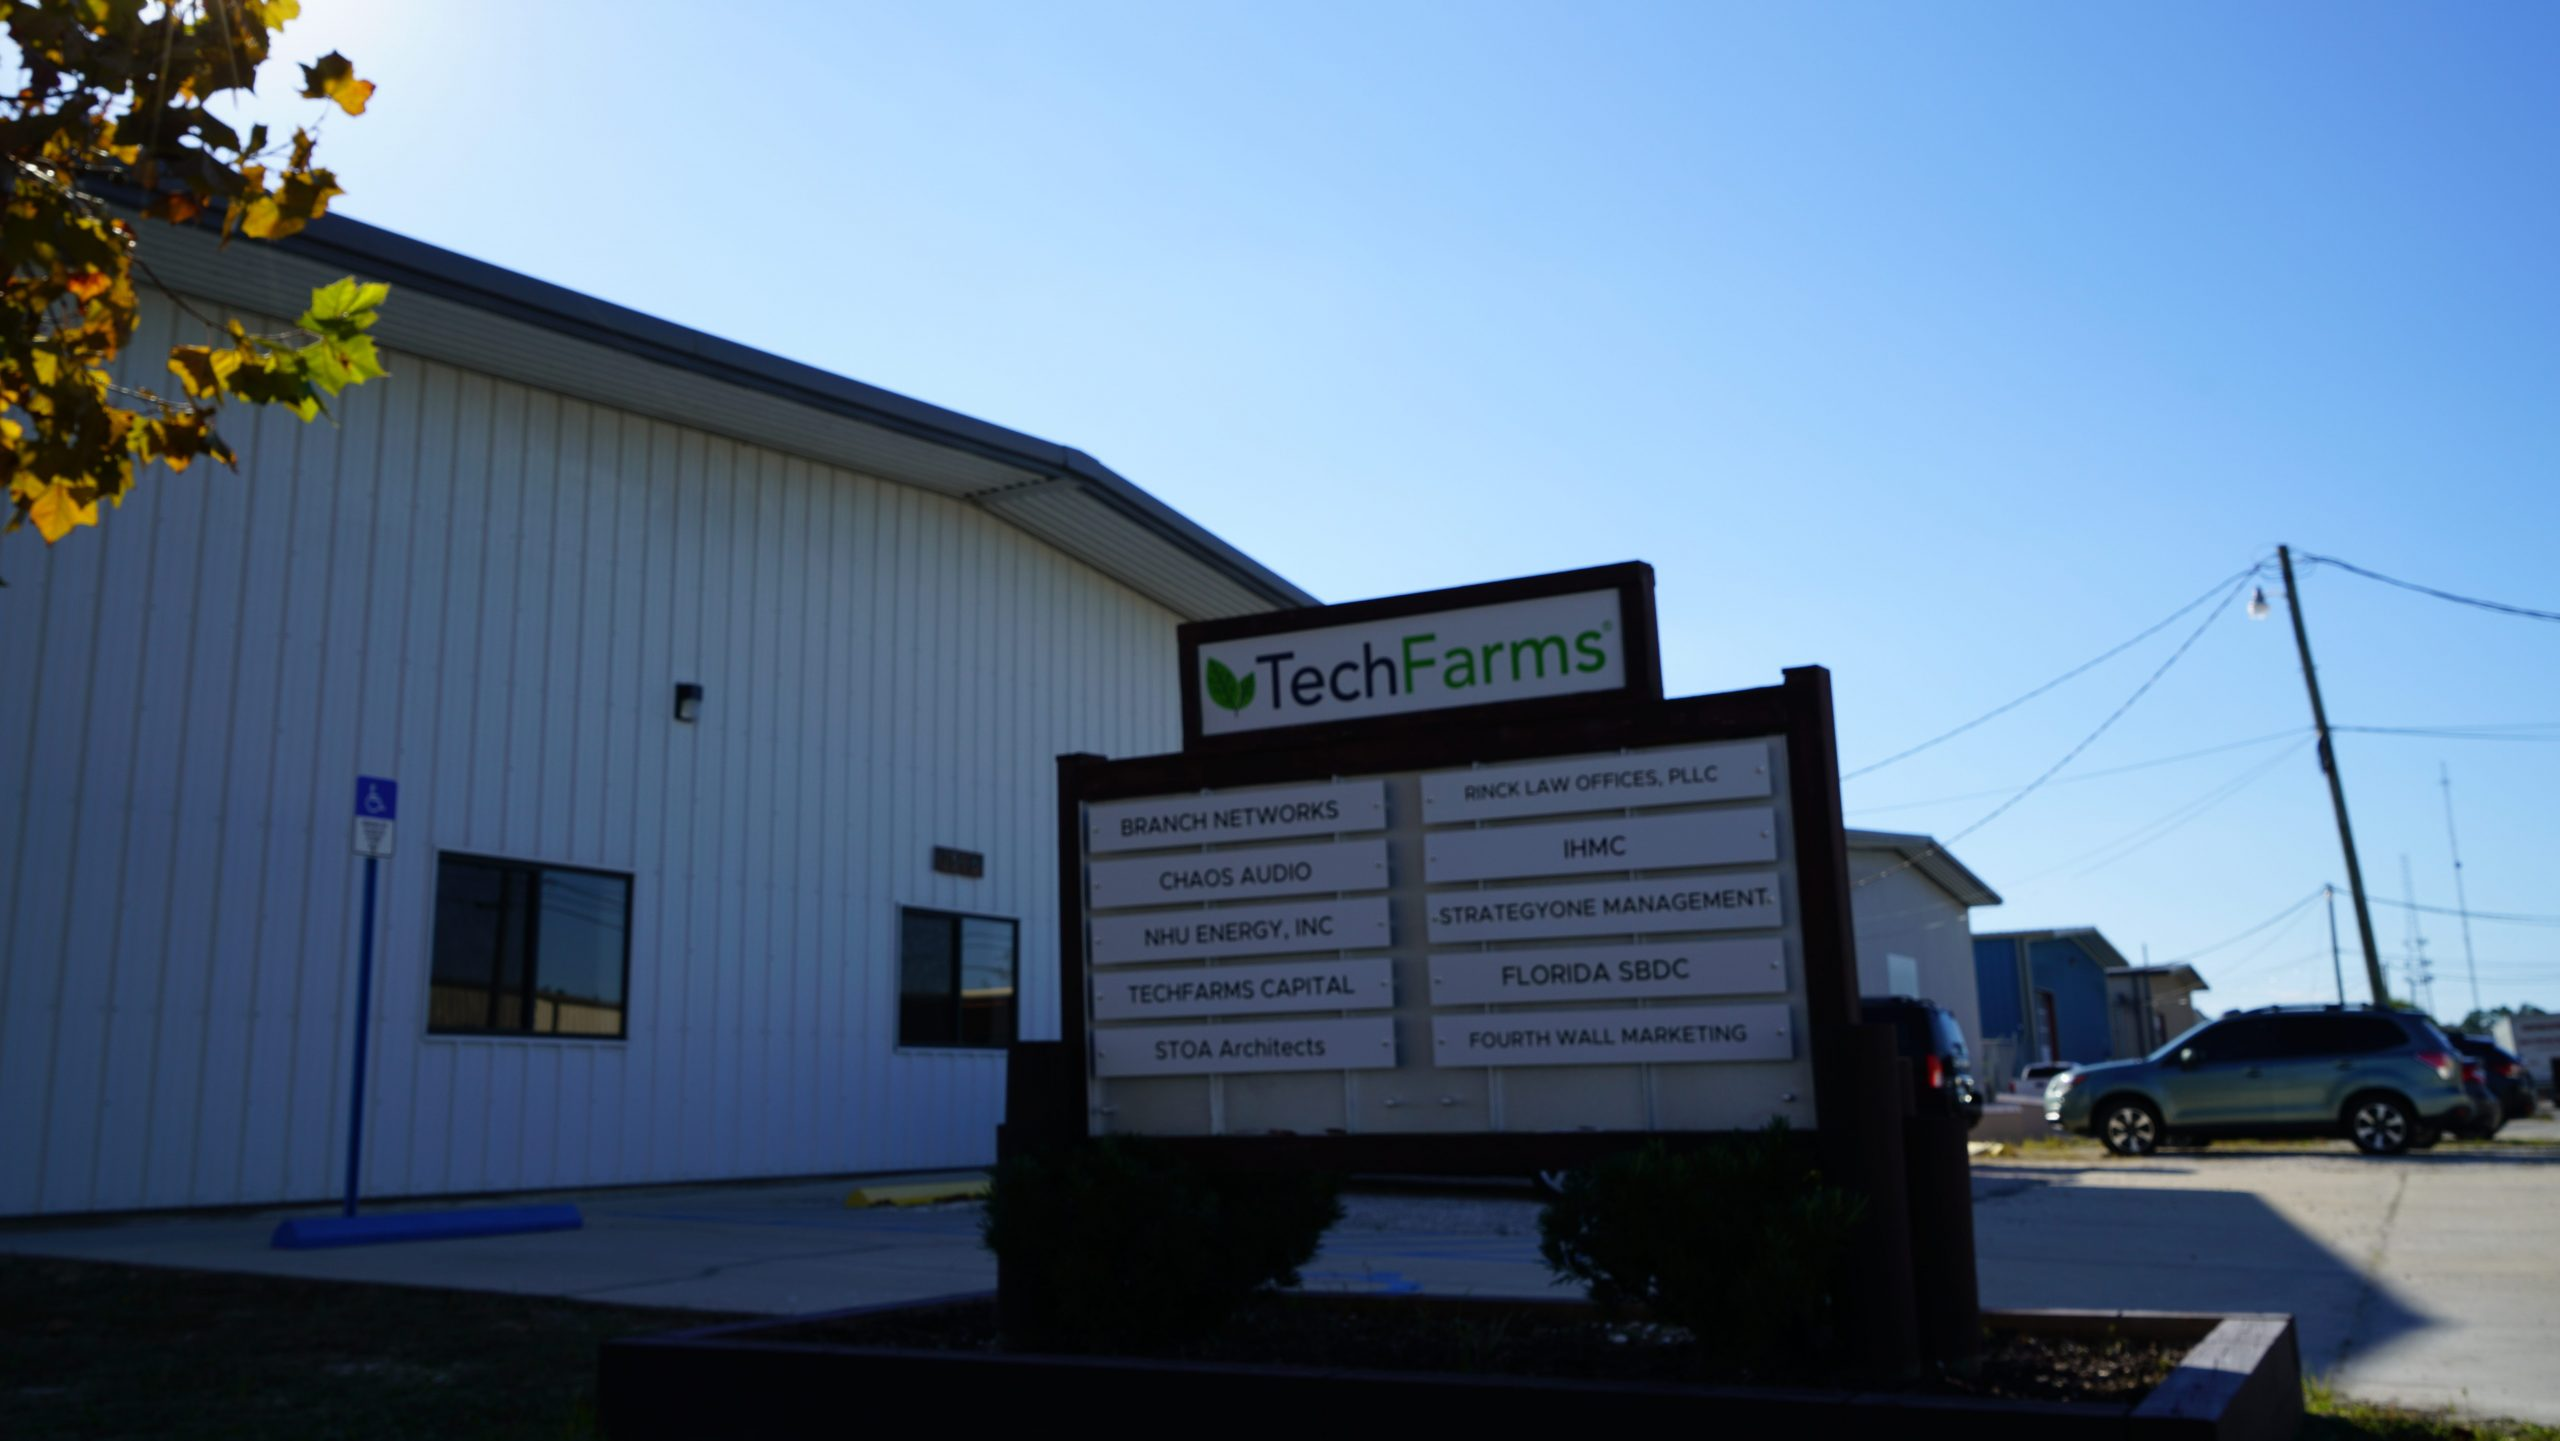 TechFarms Technology Incubator Accelerator Startup coworking space